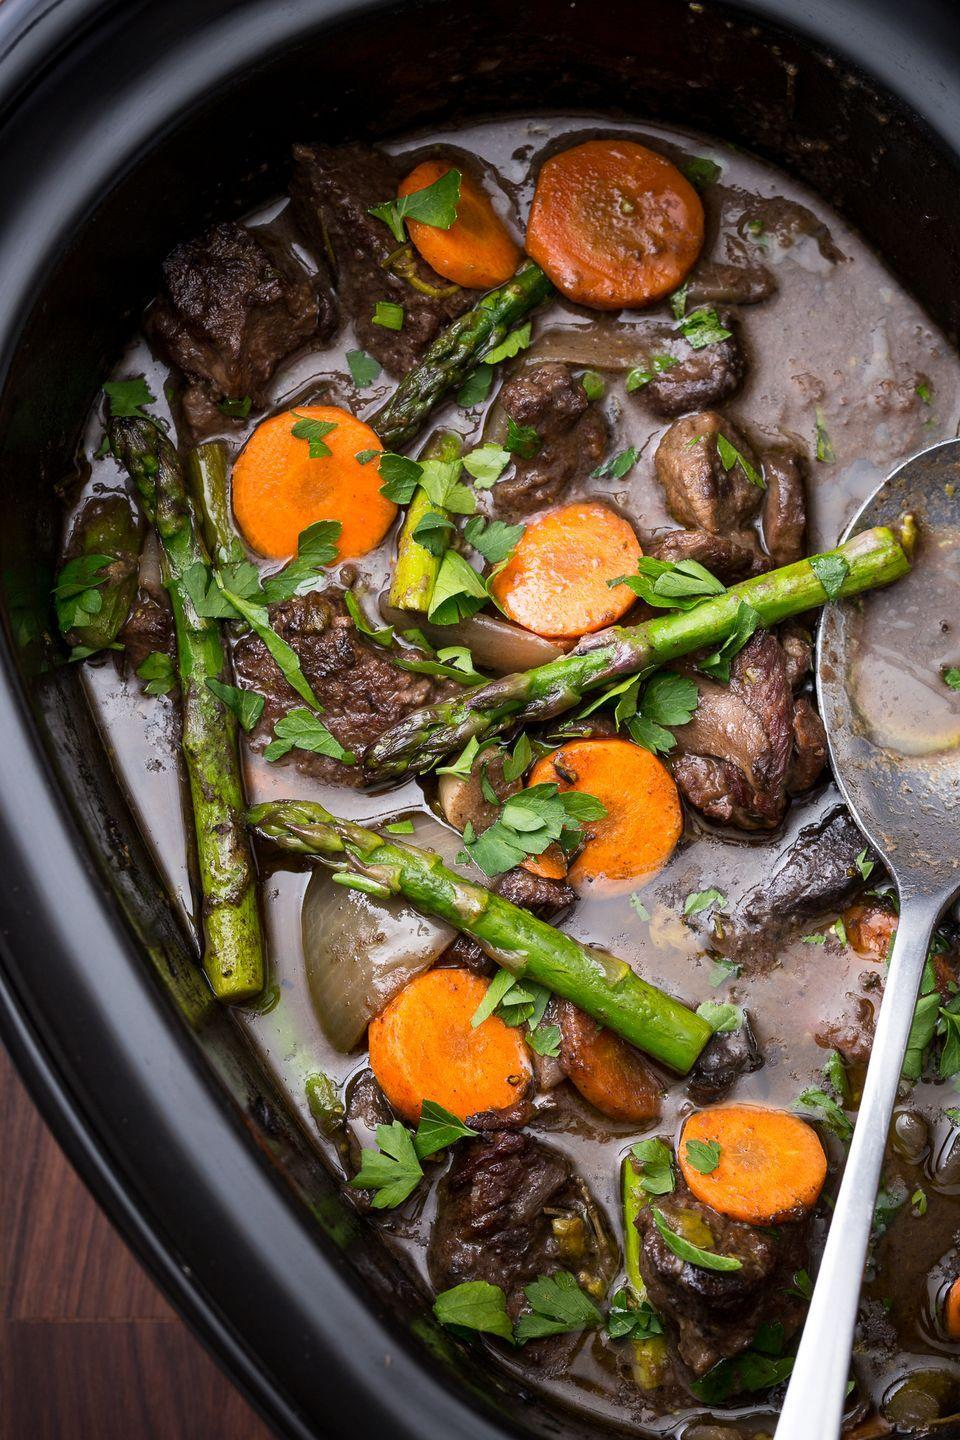 """<p>Depending on where you stand with alcohol on keto, you can use red wine or swap it out for more broth.</p><p>Get the recipe from <a href=""""https://www.delish.com/cooking/recipe-ideas/recipes/a46976/slow-cooker-spring-beef-bourginon-recipe/"""" rel=""""nofollow noopener"""" target=""""_blank"""" data-ylk=""""slk:Delish"""" class=""""link rapid-noclick-resp"""">Delish</a>. </p>"""